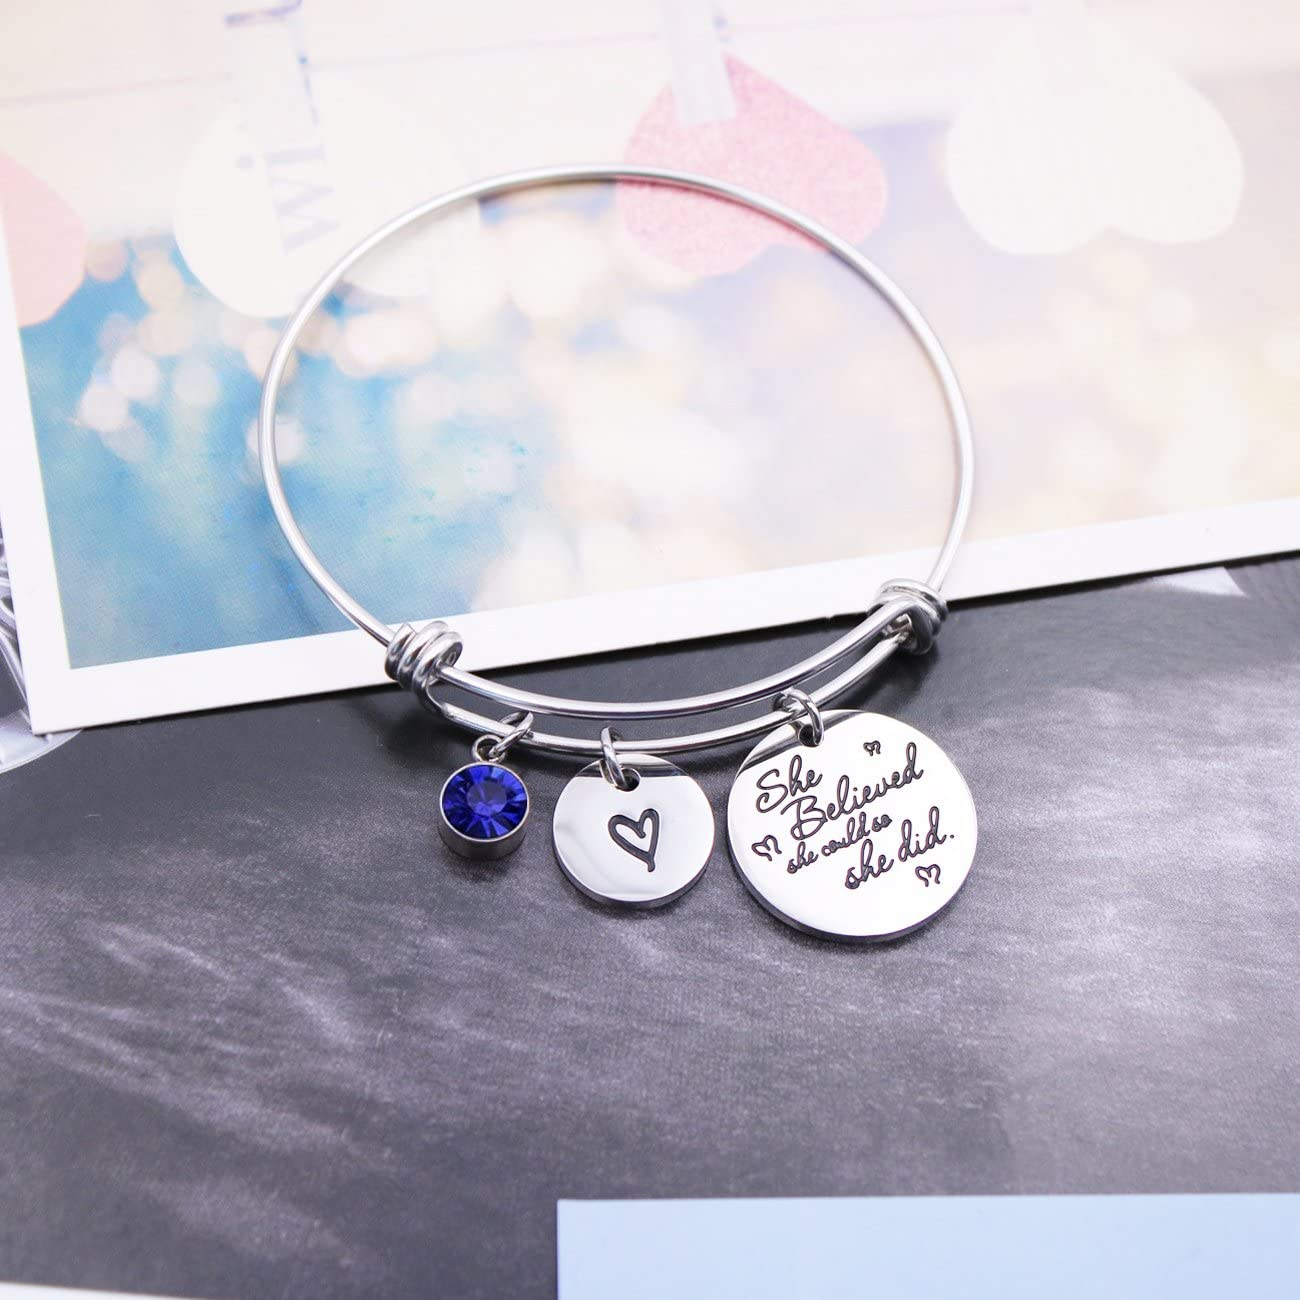 DYbaby She Believed She Could So She Did Birthstone Bracelet Expandable Heart Pendant Bracelet Inspirational Birthday Gift for Her